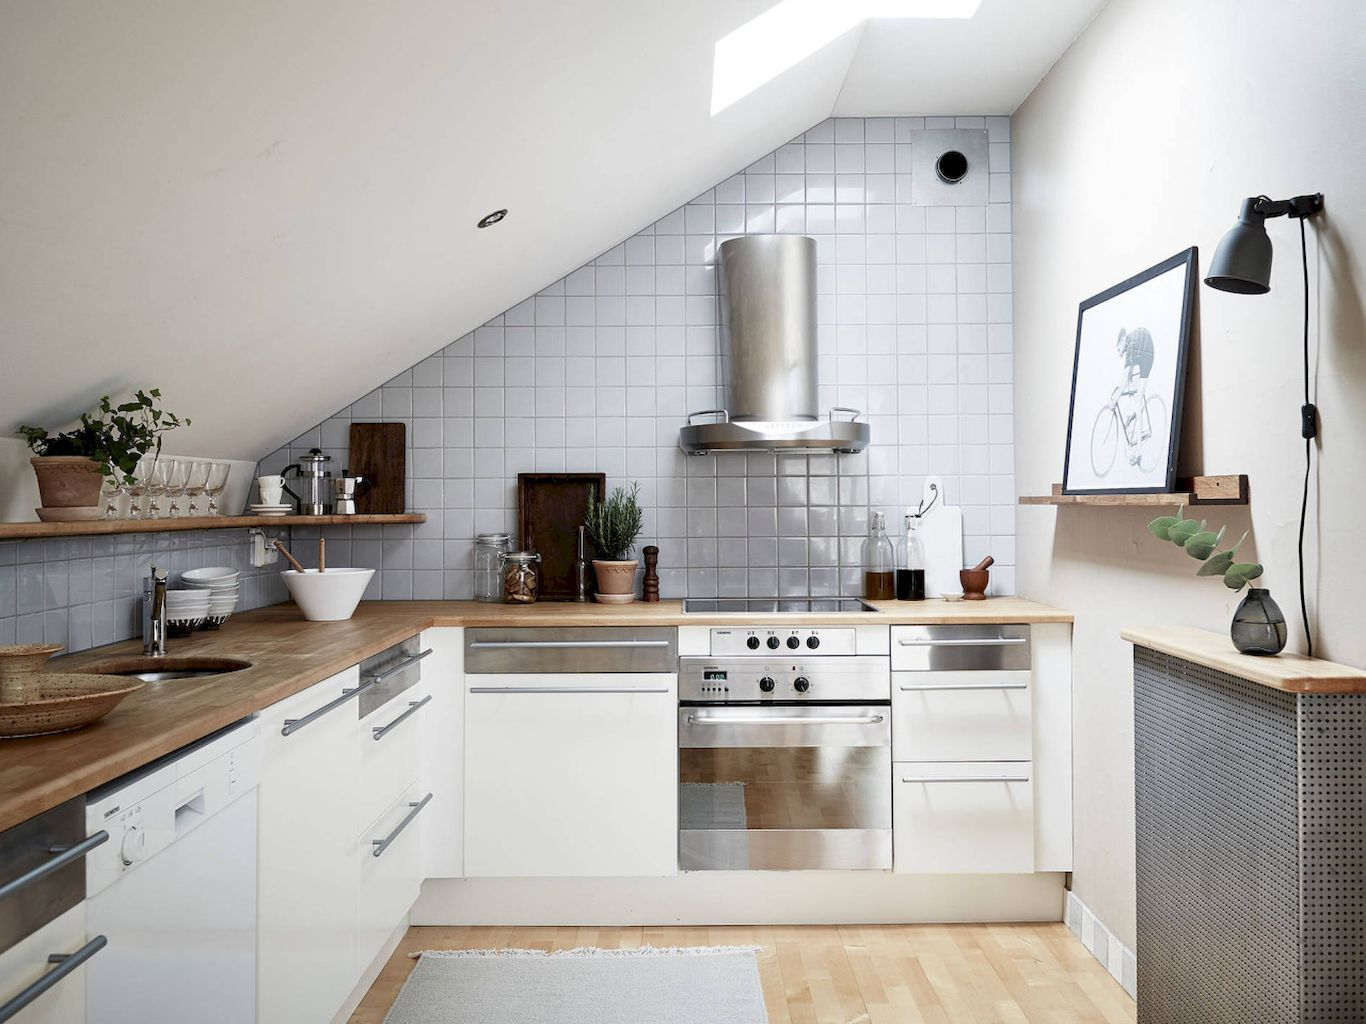 Awesome 140 Smart Apartment Decorating Ideas Https Coachdecor Com 140 Smart Apartment Decorating Ideas Apartment Kitchen Loft Kitchen Kitchen Remodel